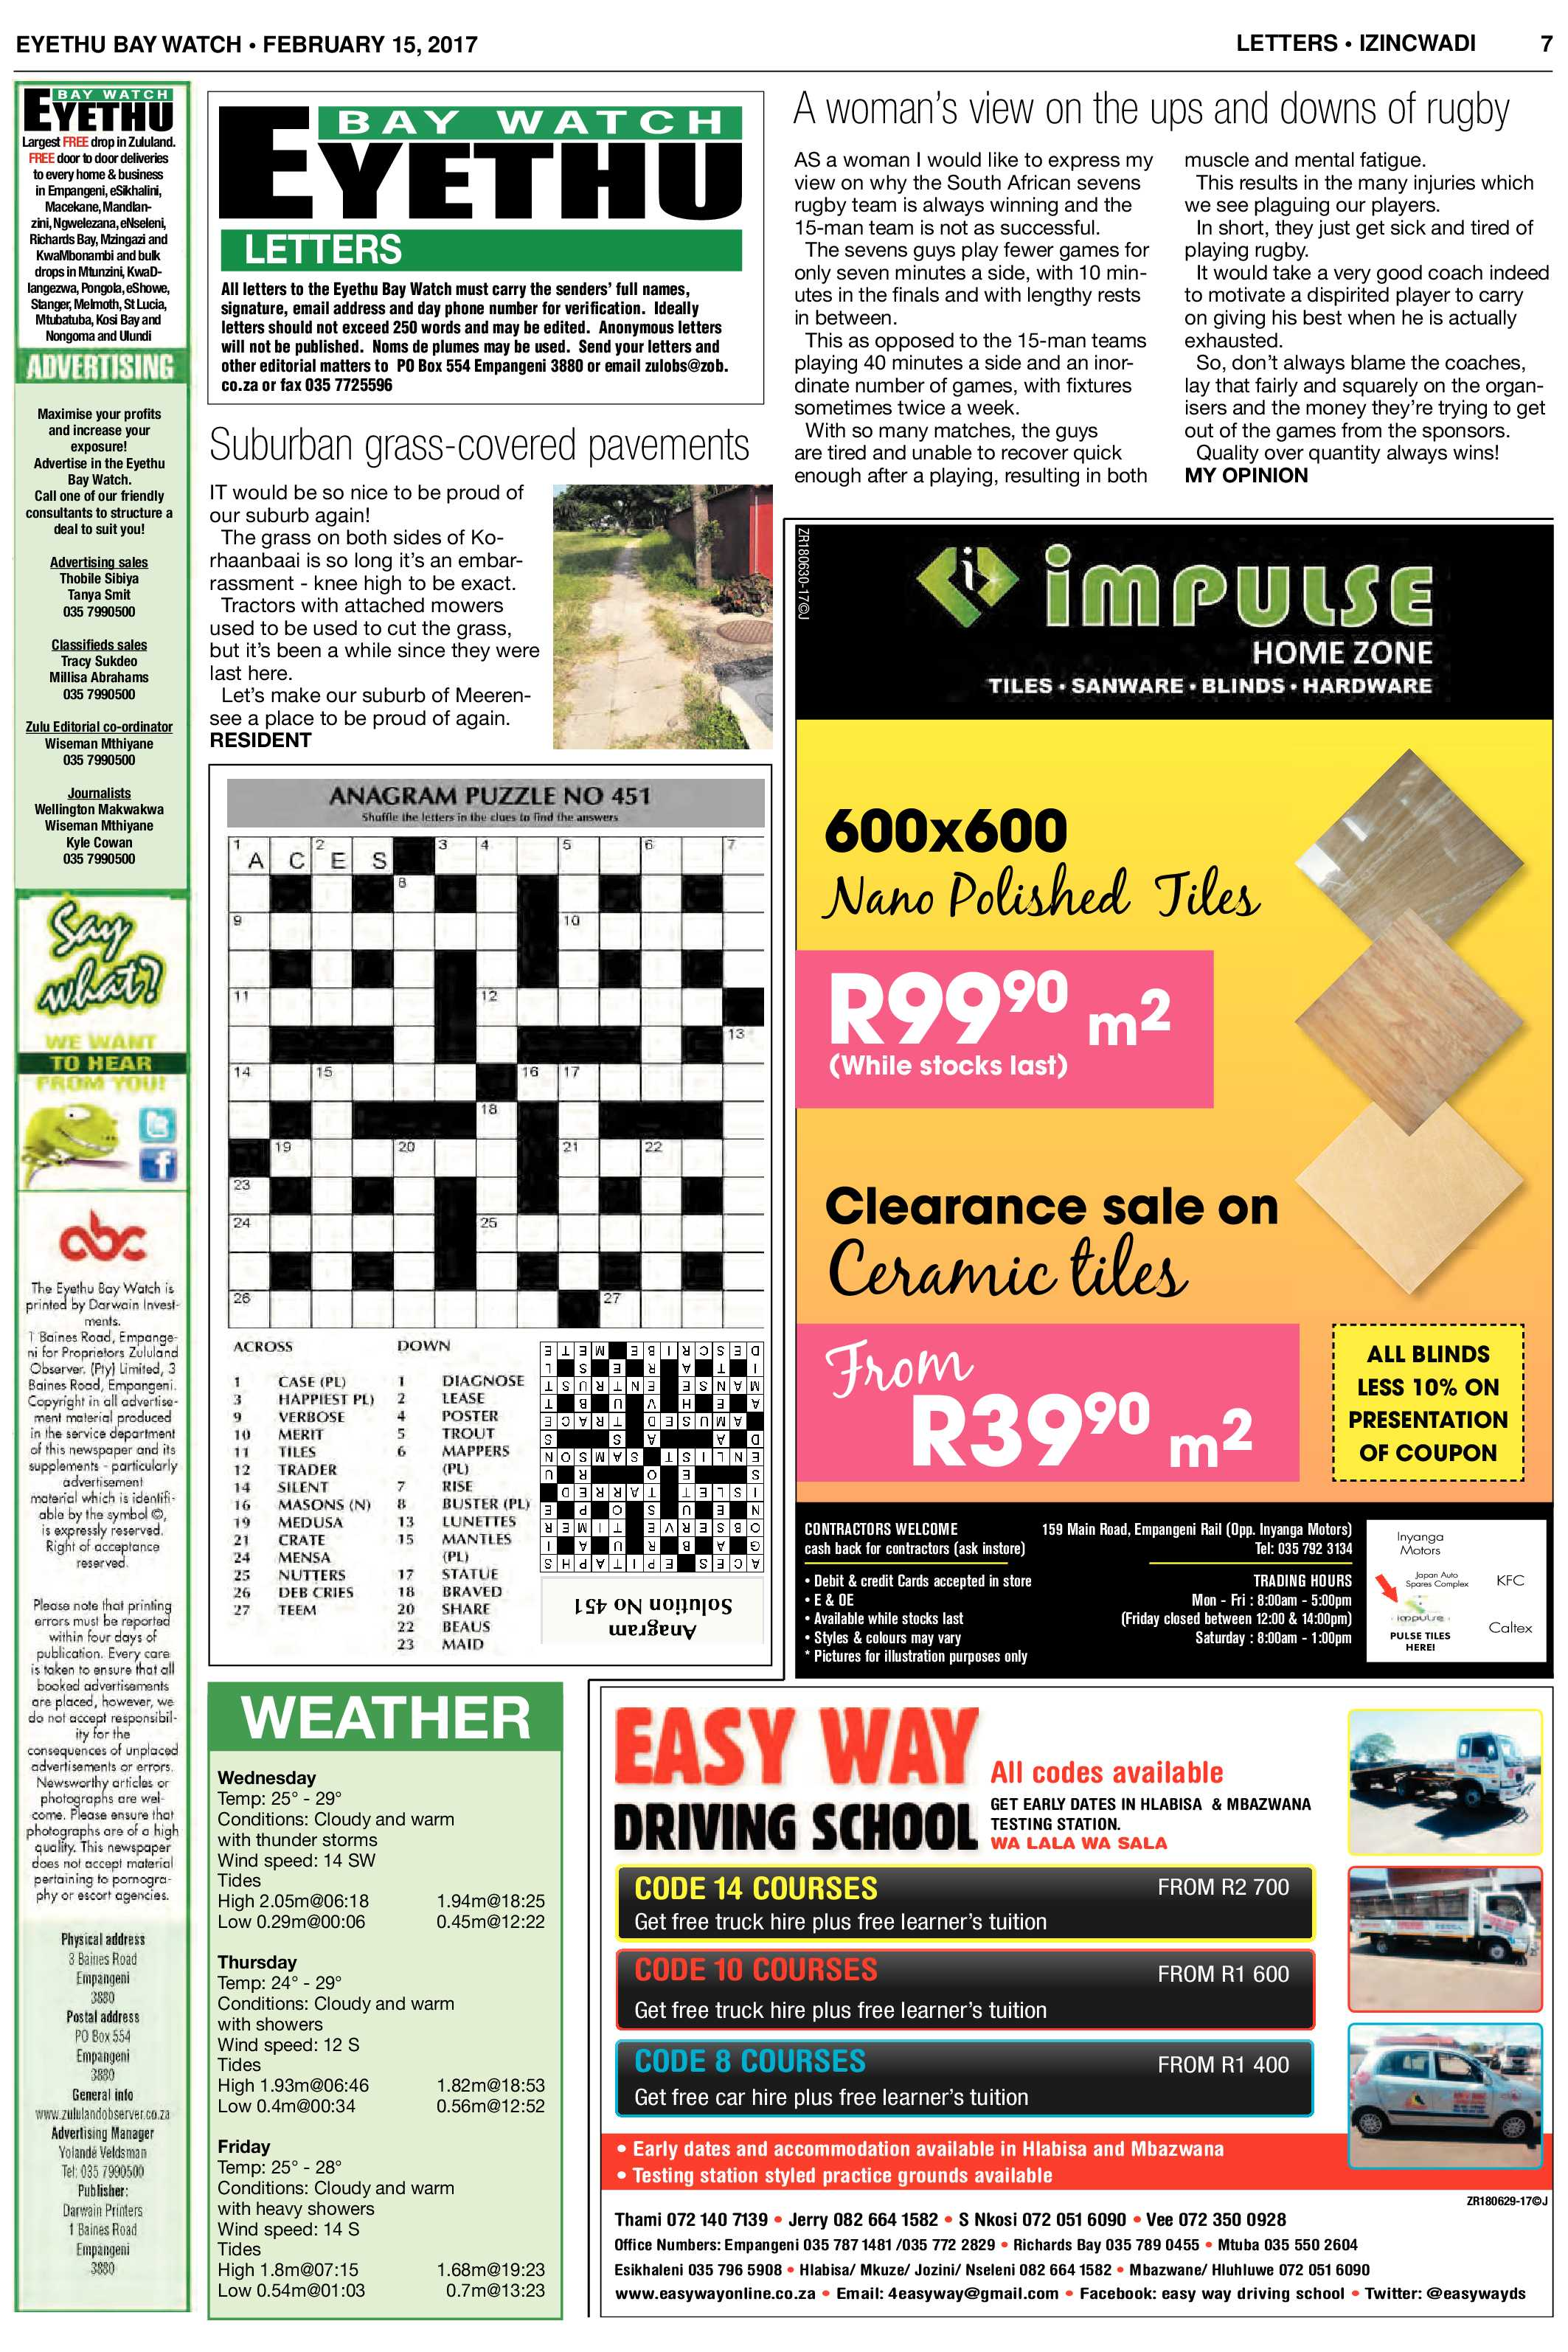 eyethu-baywatch-15-february-epapers-page-7